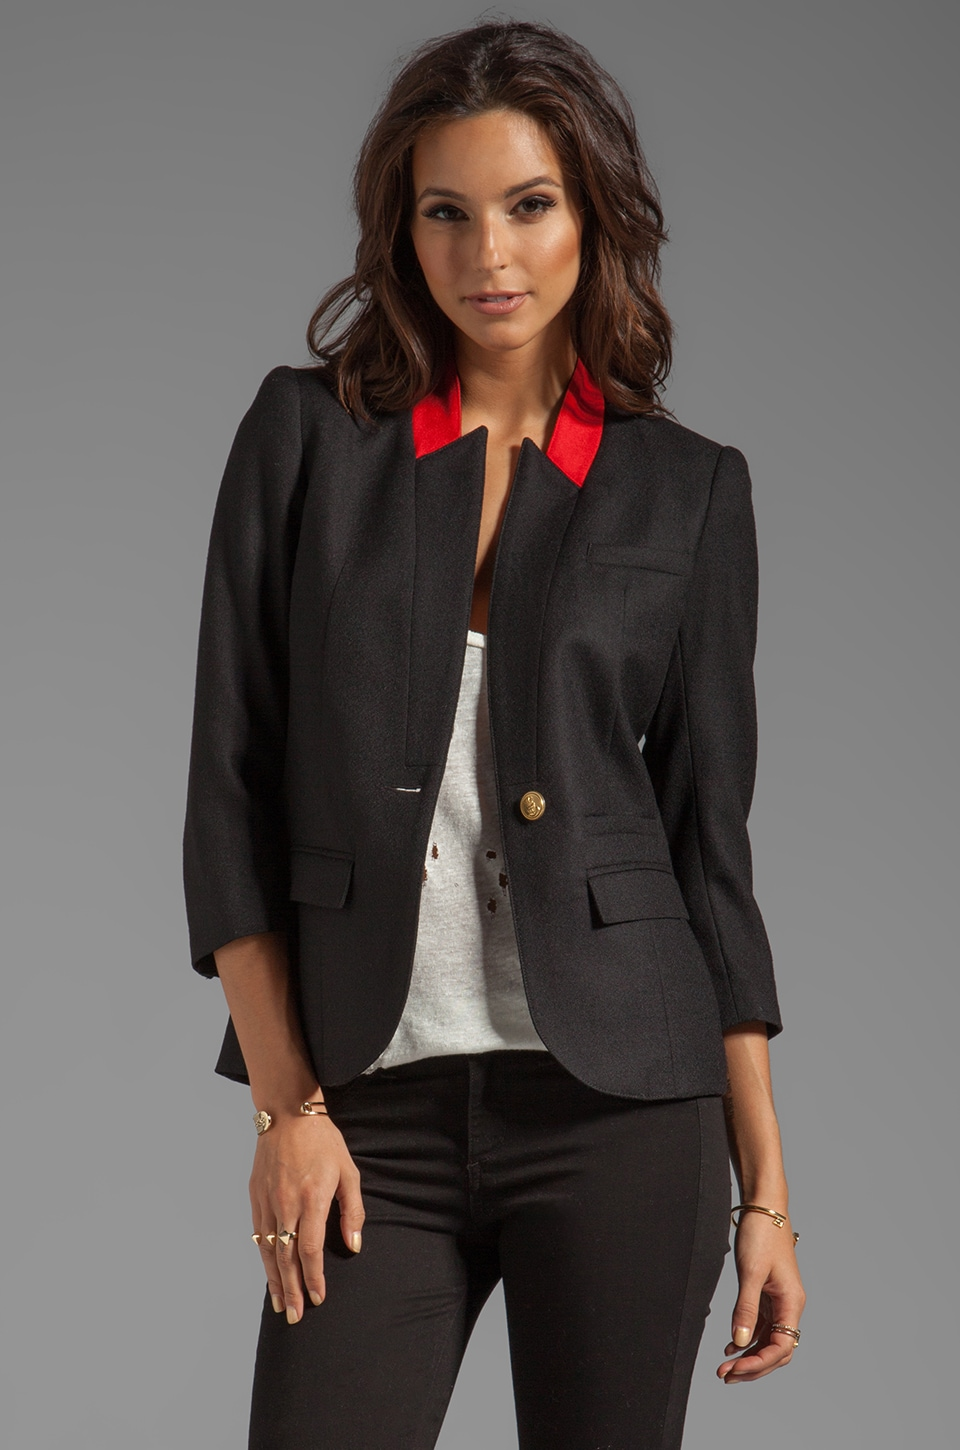 Smythe Flat Lapel Blazer in Black/Poppy